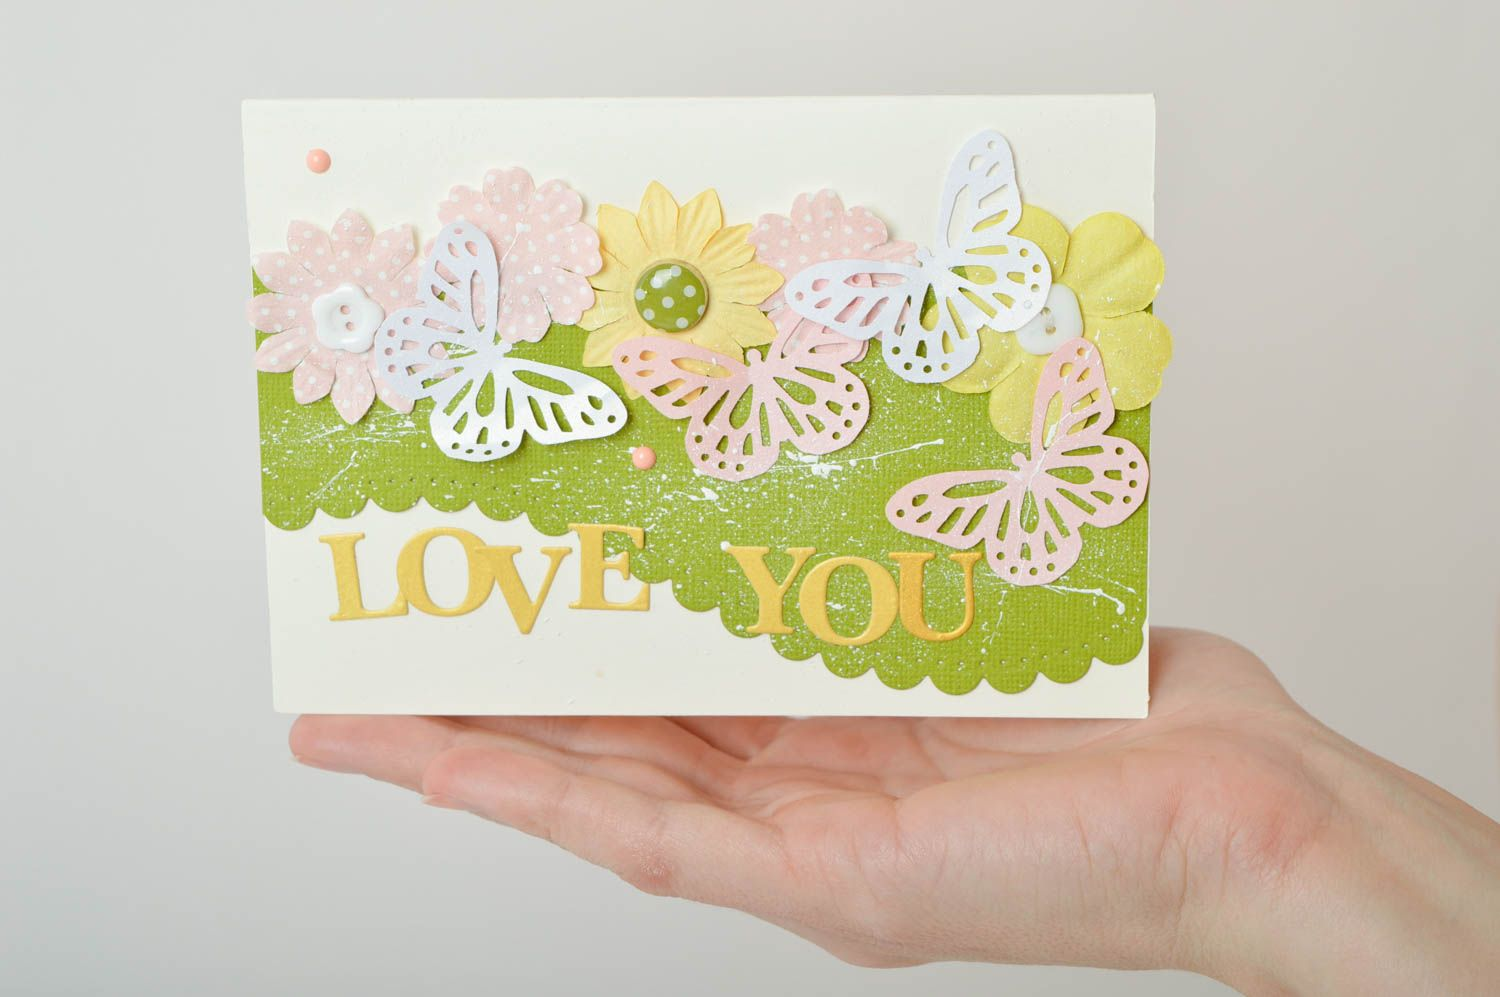 Homemade postcard greeting card love you card souvenir ideas cool gifts photo 5